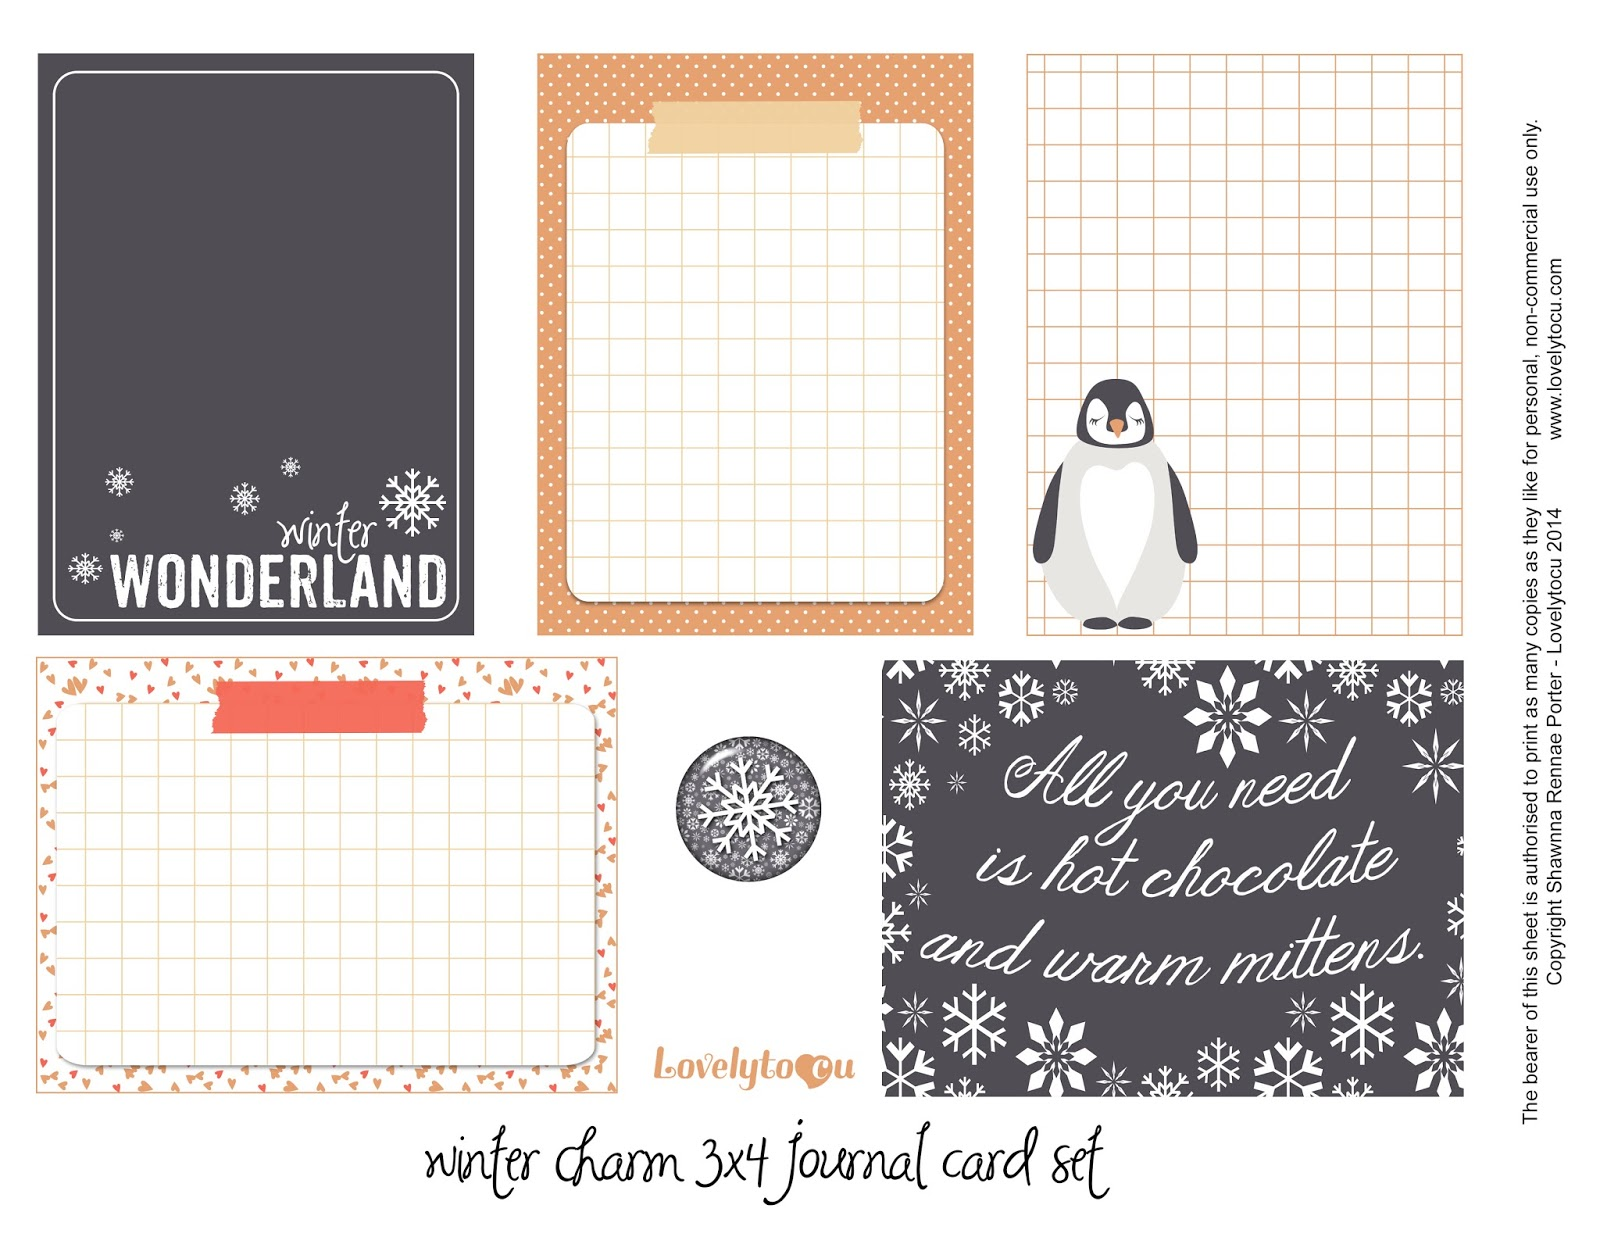 Free journal card printables, Lovelytocu.ca